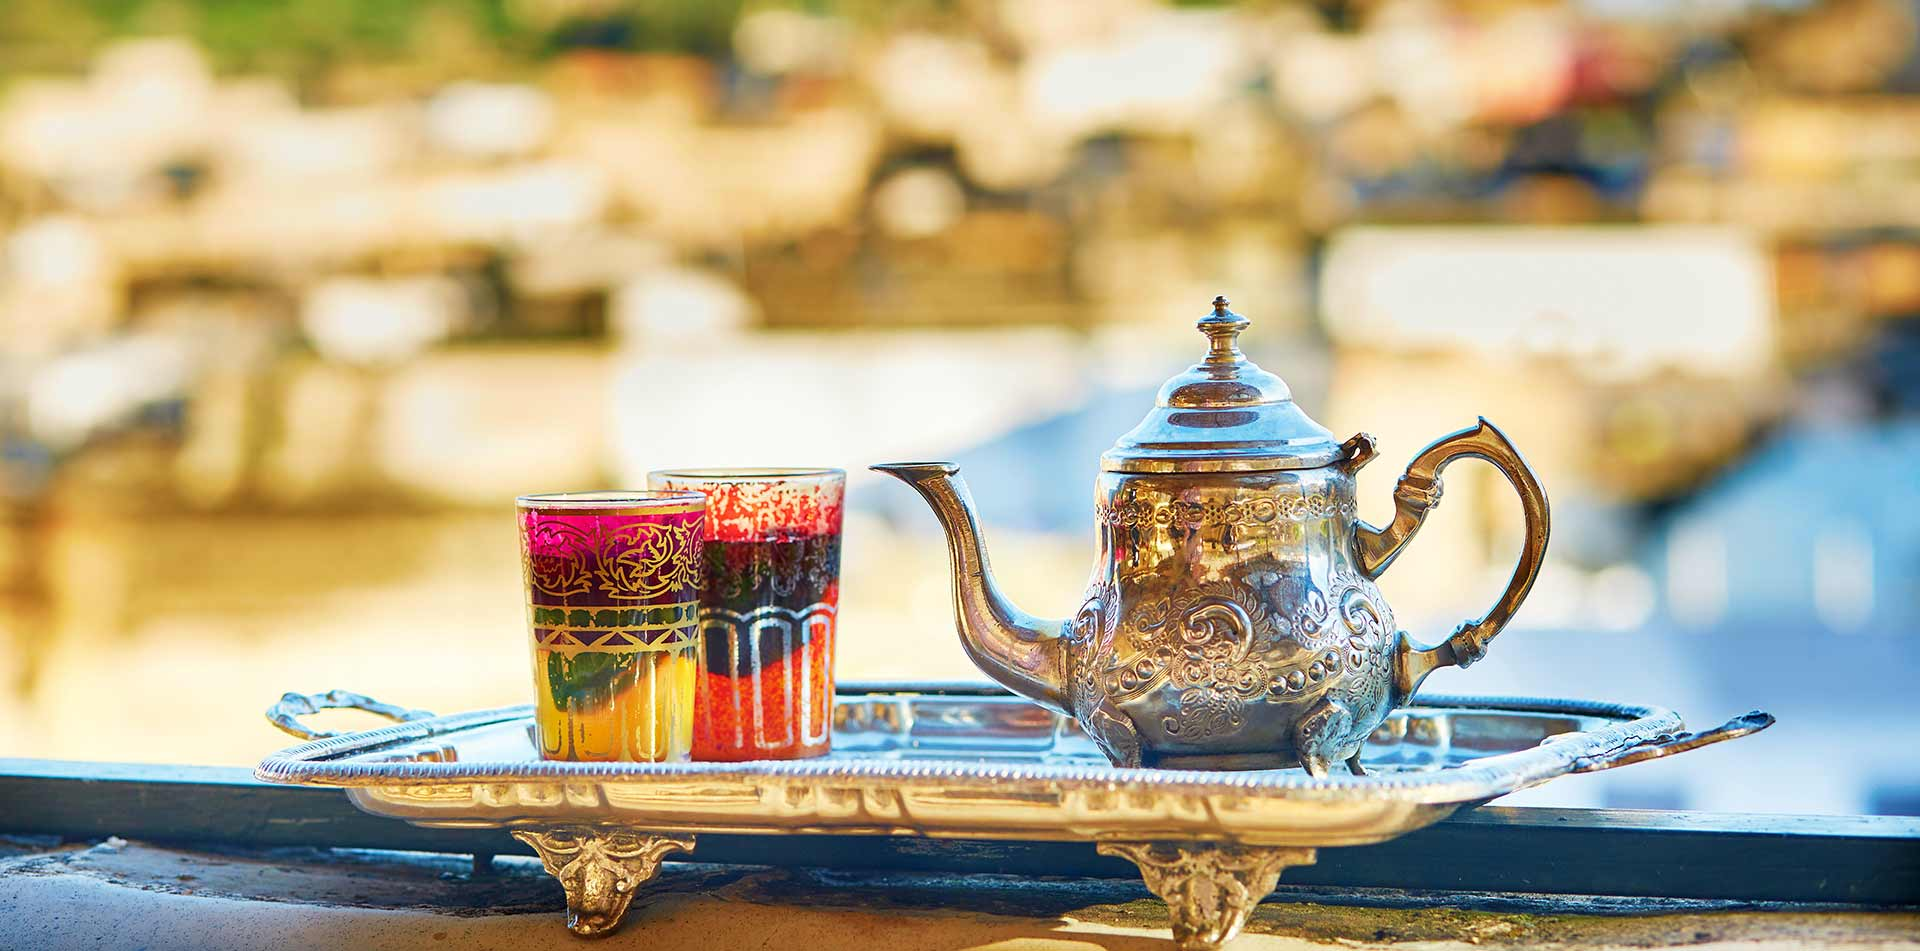 Africa Morocco traditional mint tea colorful glasses decorated silver teapot and tray - luxury vacation destinations